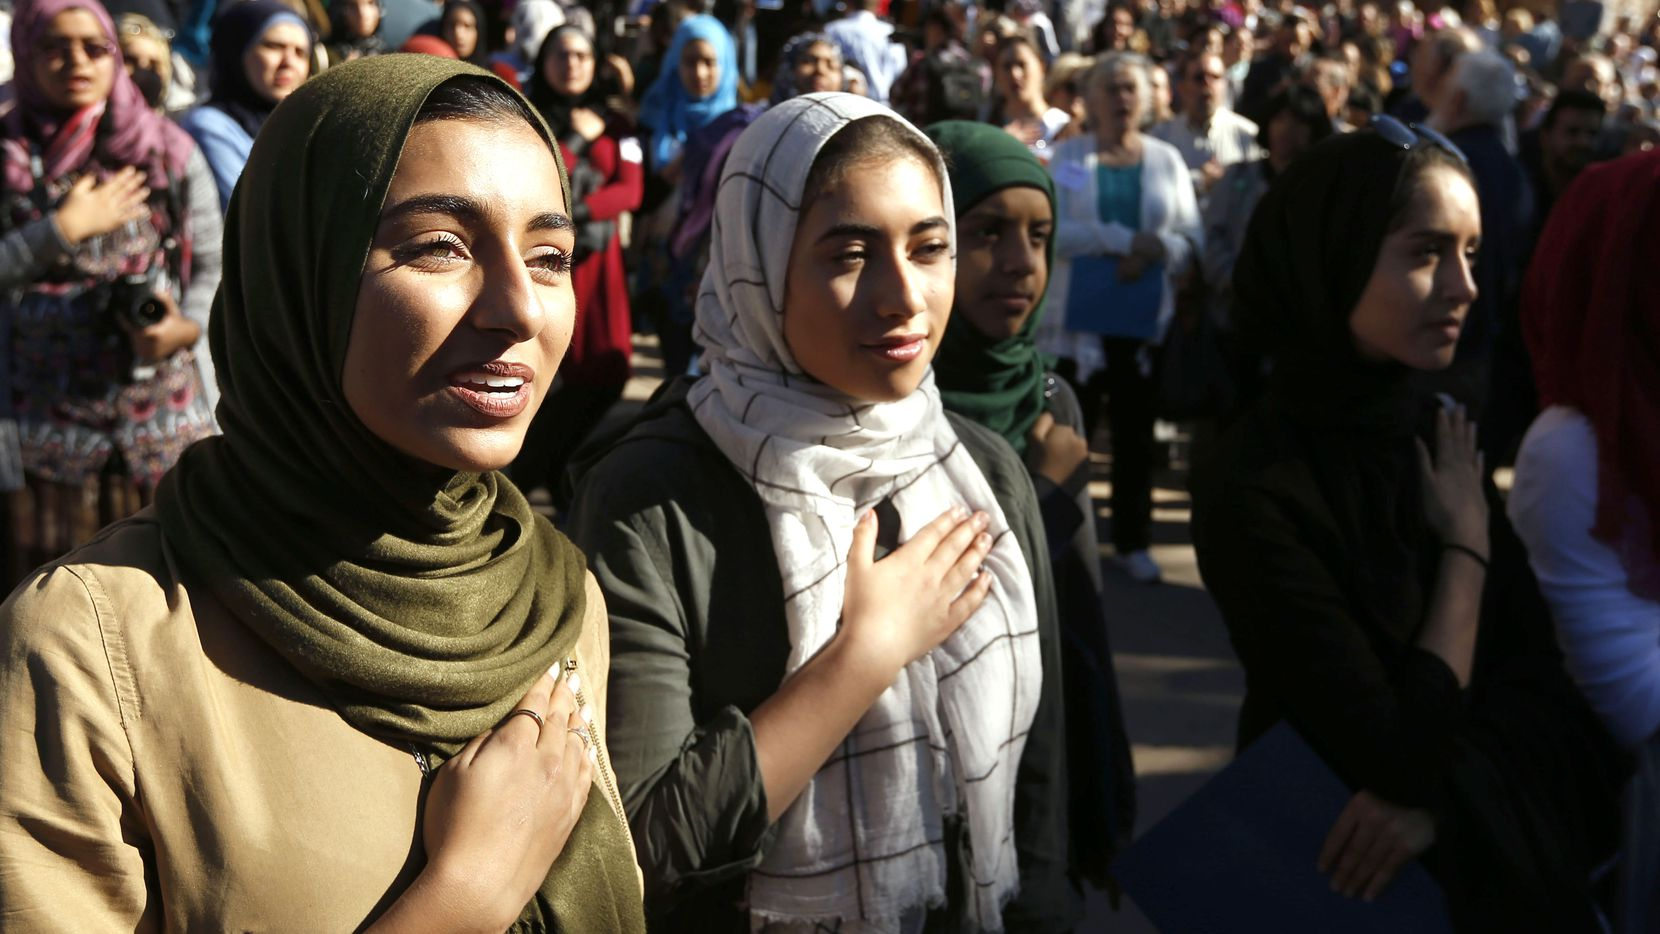 Hiba Loya and Donia Kased both of Houston as the national anthem is sung during a press conference at the steps of the Texas Capitol during the Texas Muslim Capitol Day rally in Austin on Tuesday, January 31, 2017.